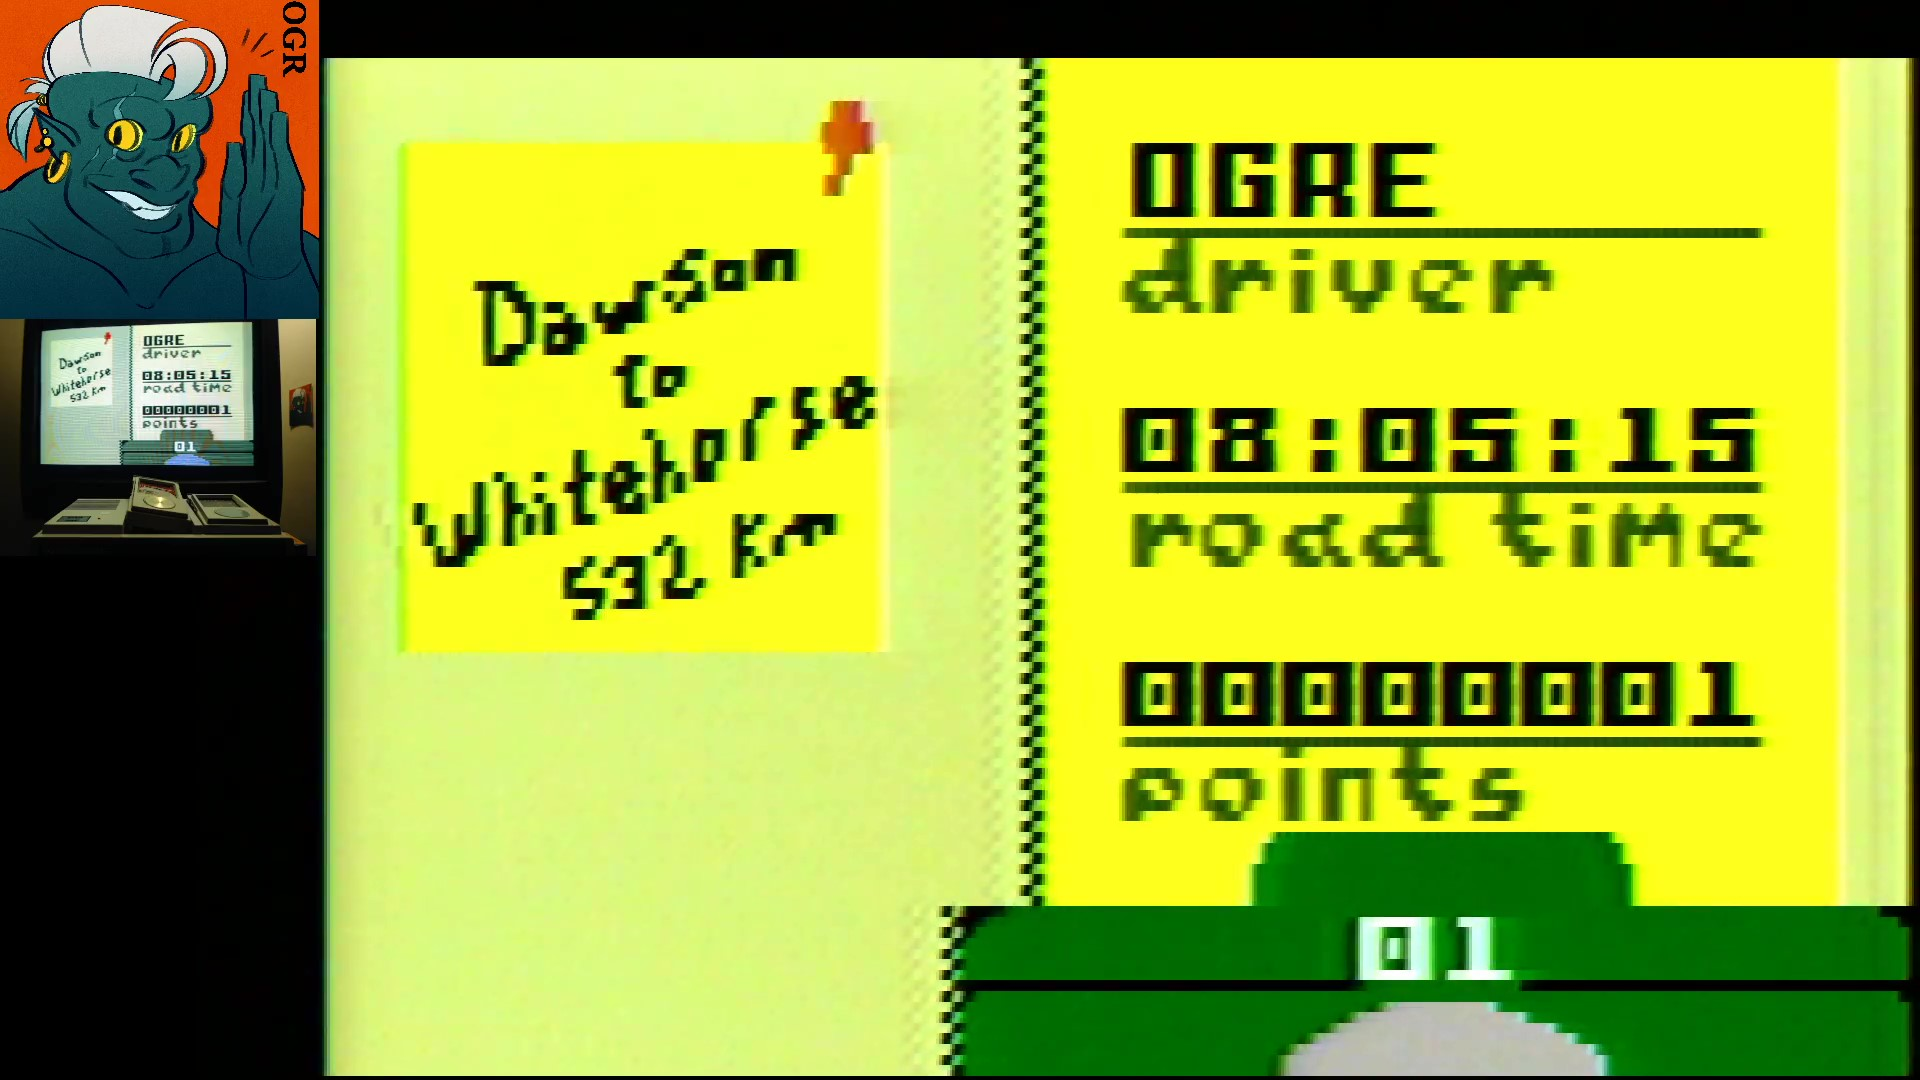 AwesomeOgre: Desert Bus: Arctic Bus (Intellivision) 1 points on 2020-02-18 09:49:35